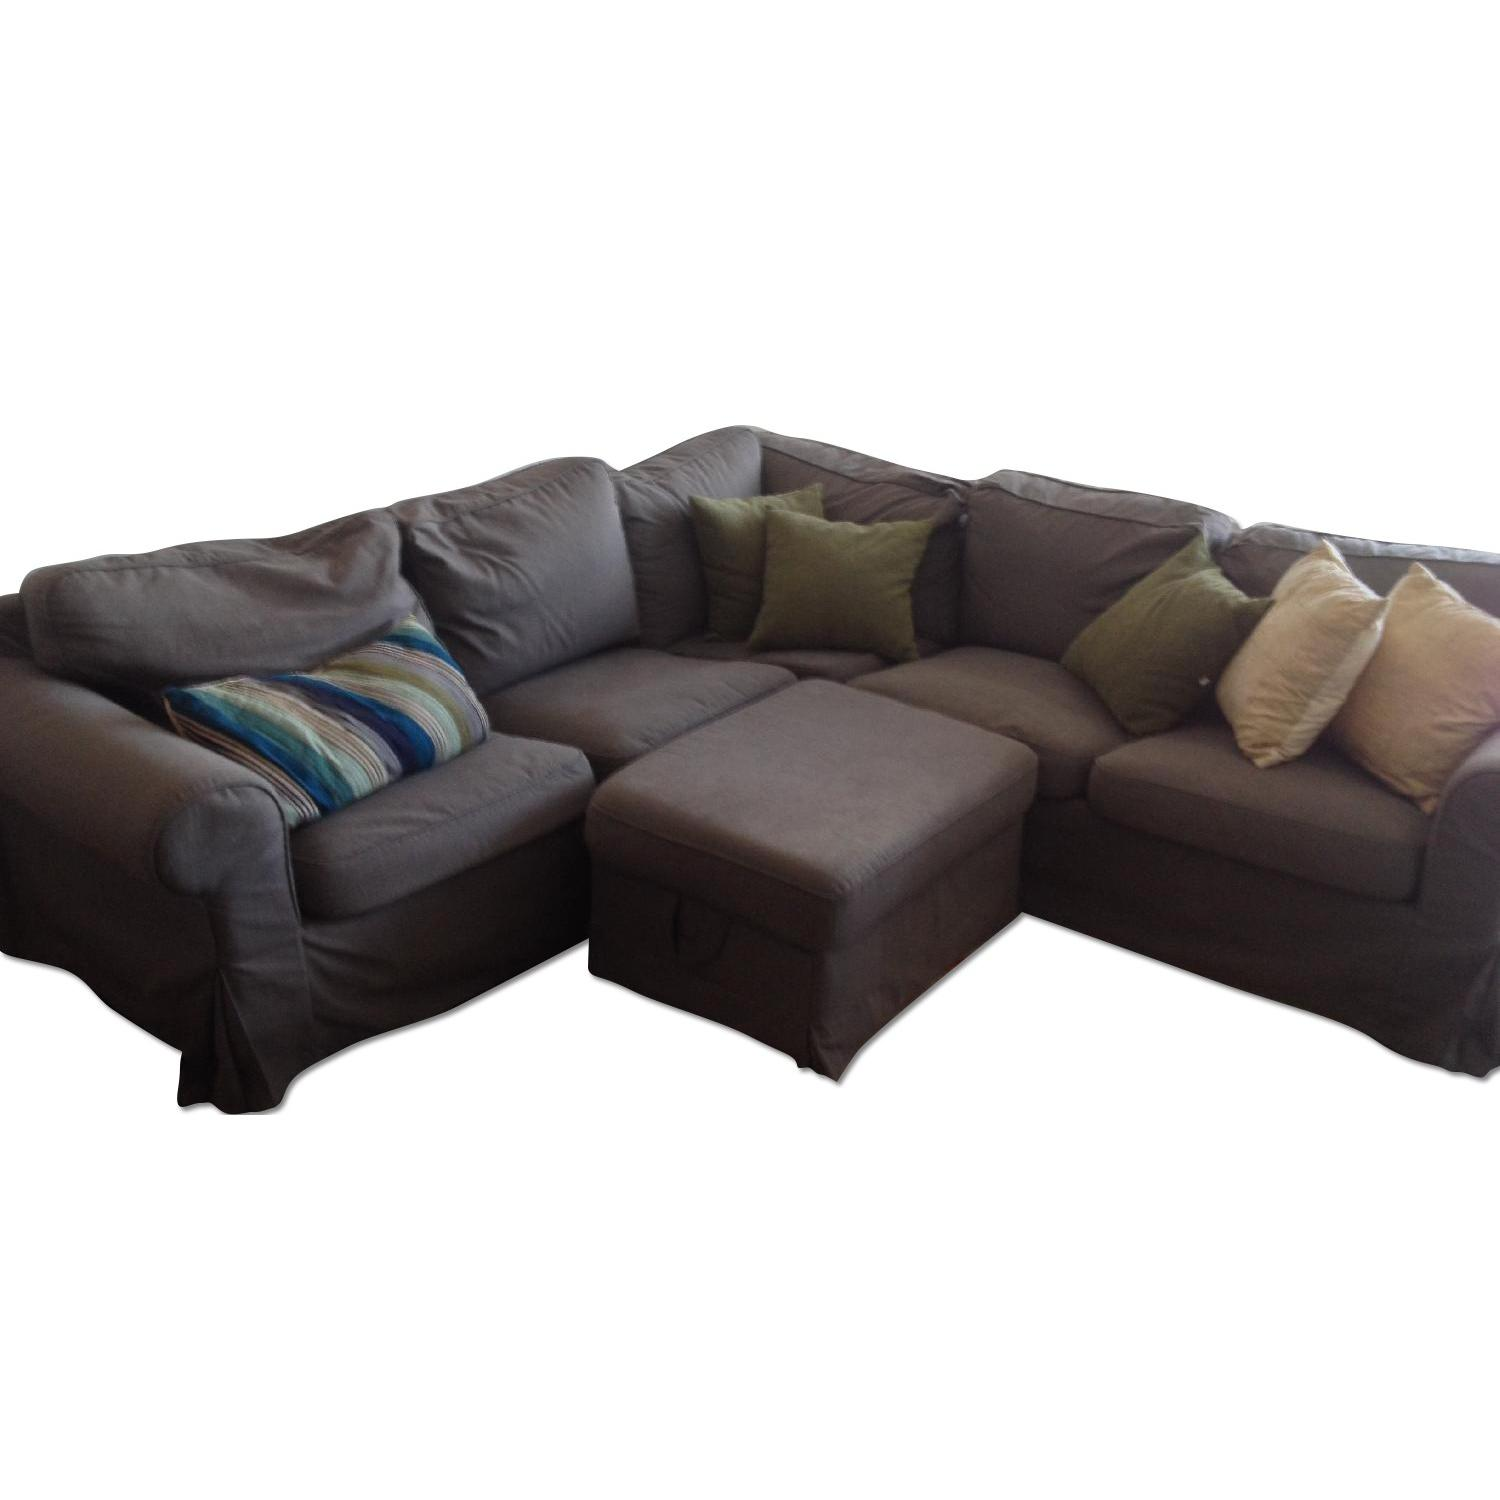 Ikea Dark Grey Sectional Sofa - image-0